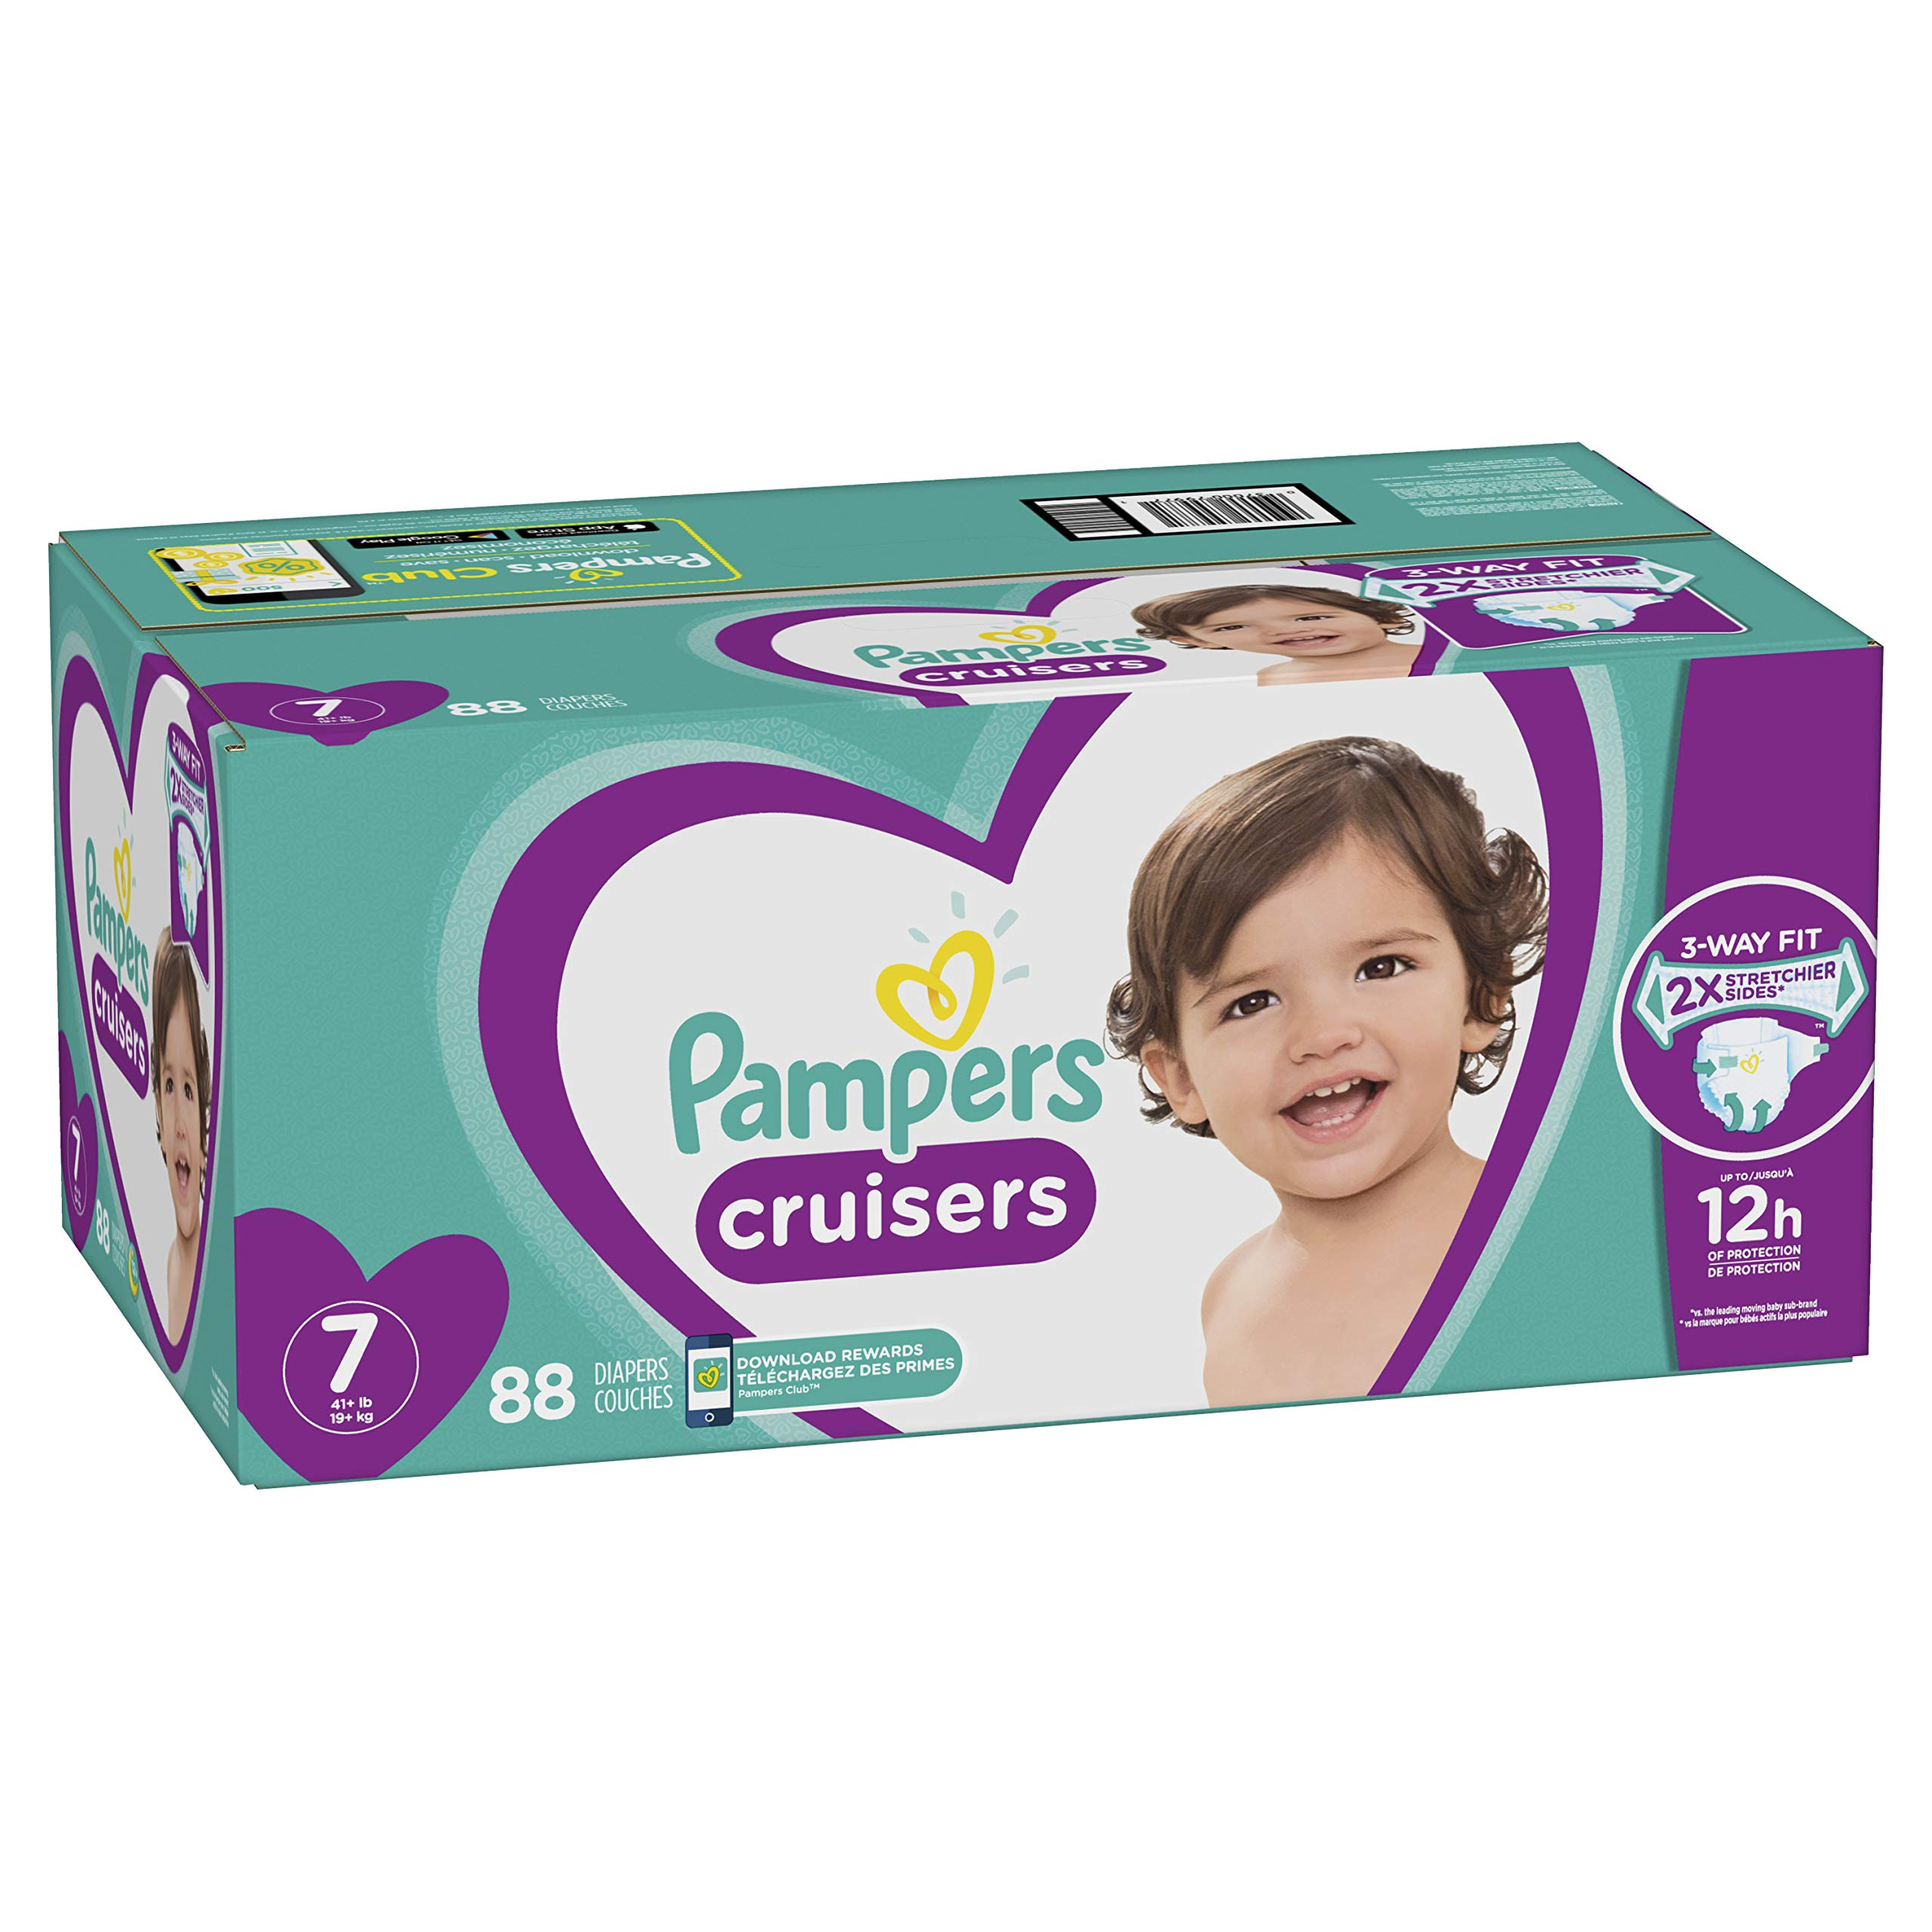 Diapers Size 7, 88 Count - Pampers Cruisers Disposable Baby Diapers, ONE MONTH SUPPLY by Pampers